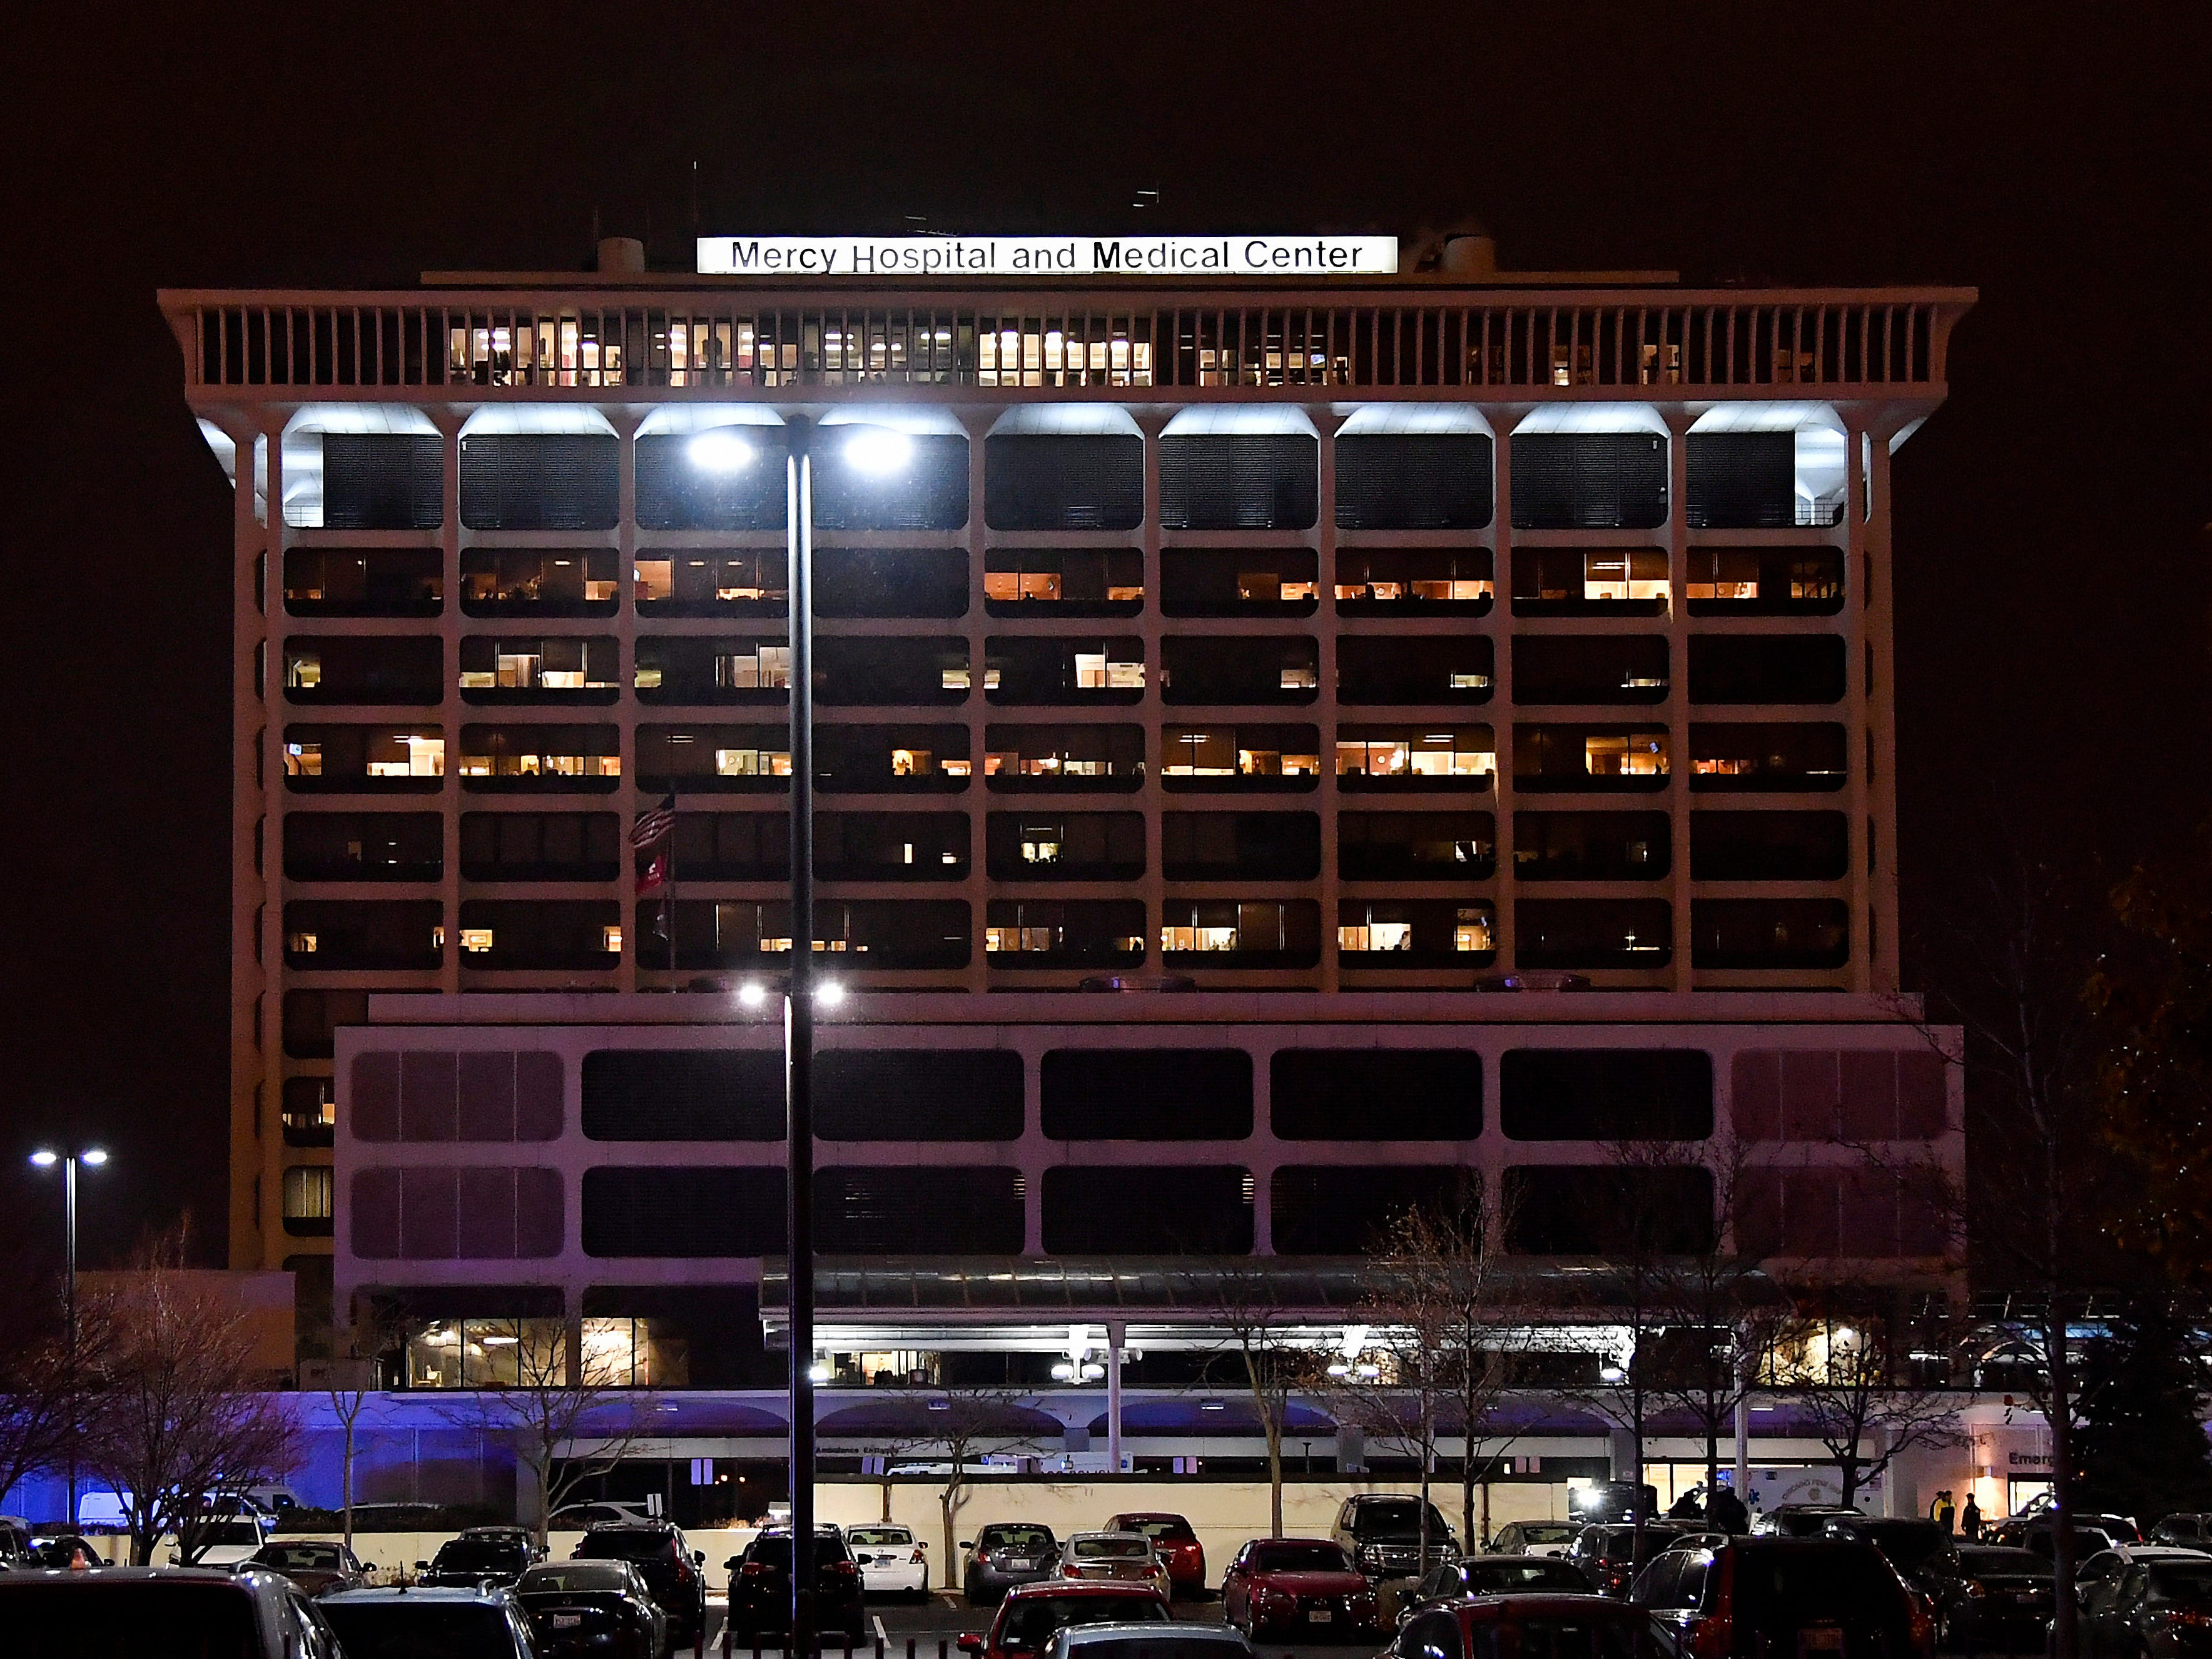 Mercy Hospital and Medial Center in Chicago on Nov. 18, 2018, after a shooting that left four dead.